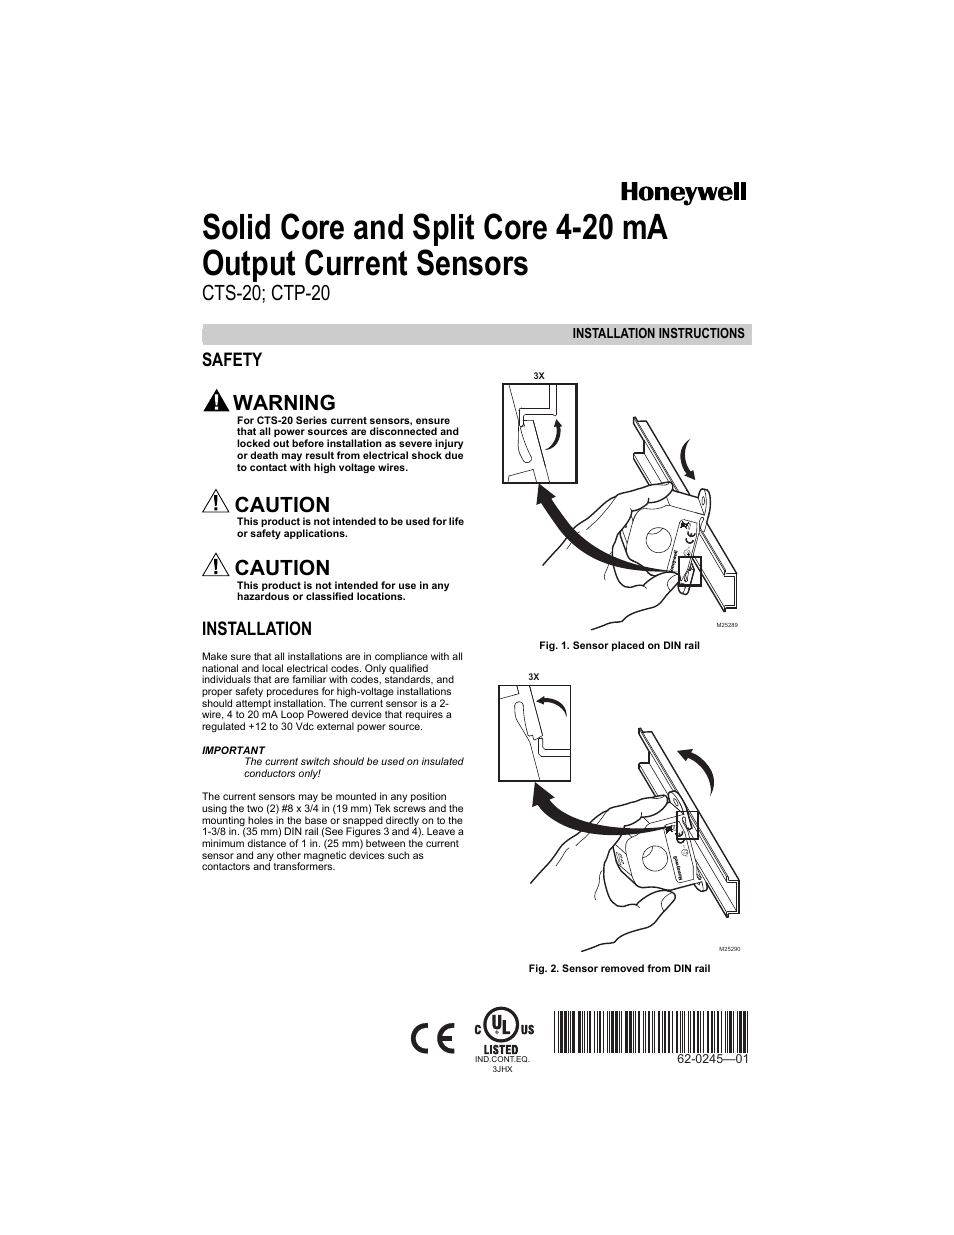 Honeywell CTP-20 User Manual | 4 pages | Also for: CTS-20 on